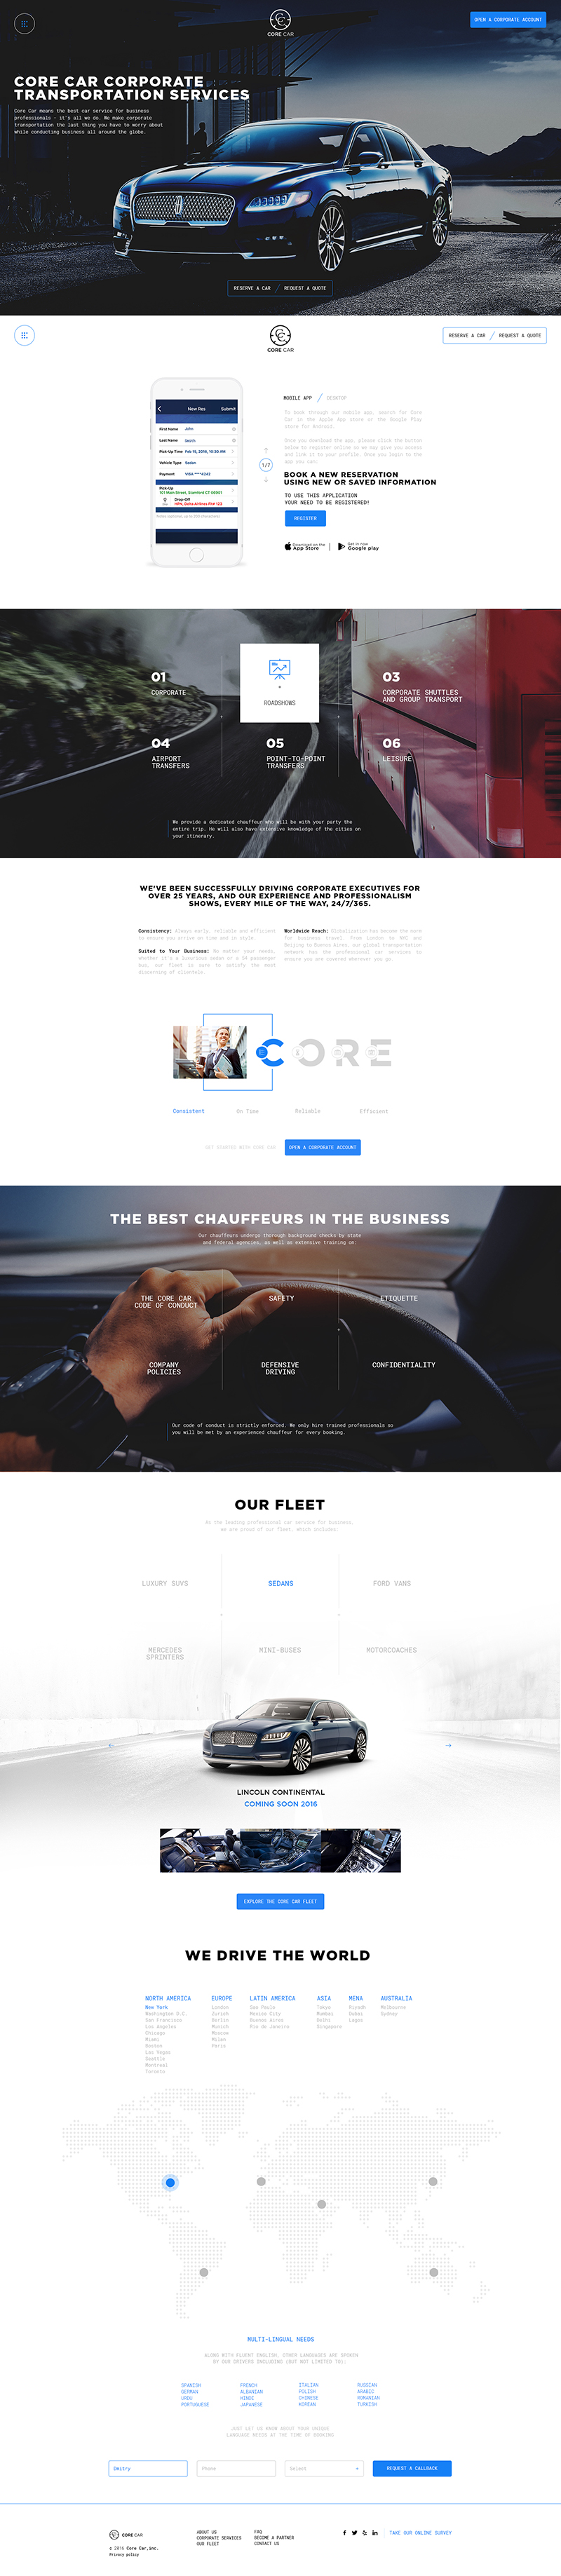 CoreCar Web Design